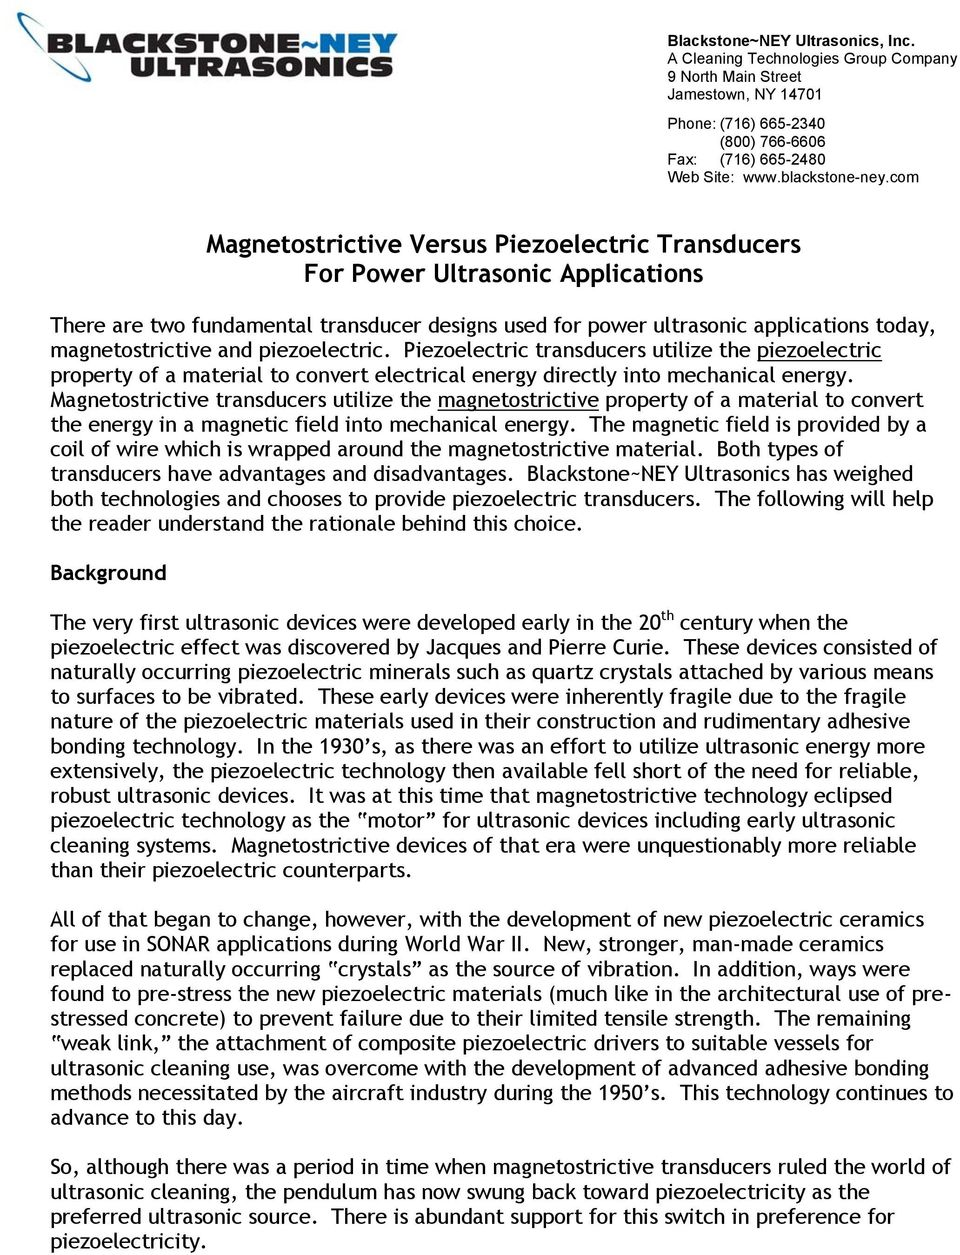 Magnetostrictive Versus Piezoelectric Transducers For Power Oscillatory Circuit An Ultrasonic Cleaning Device With Feedback Utilize The Property Of A Material To Convert Electrical Energy Directly